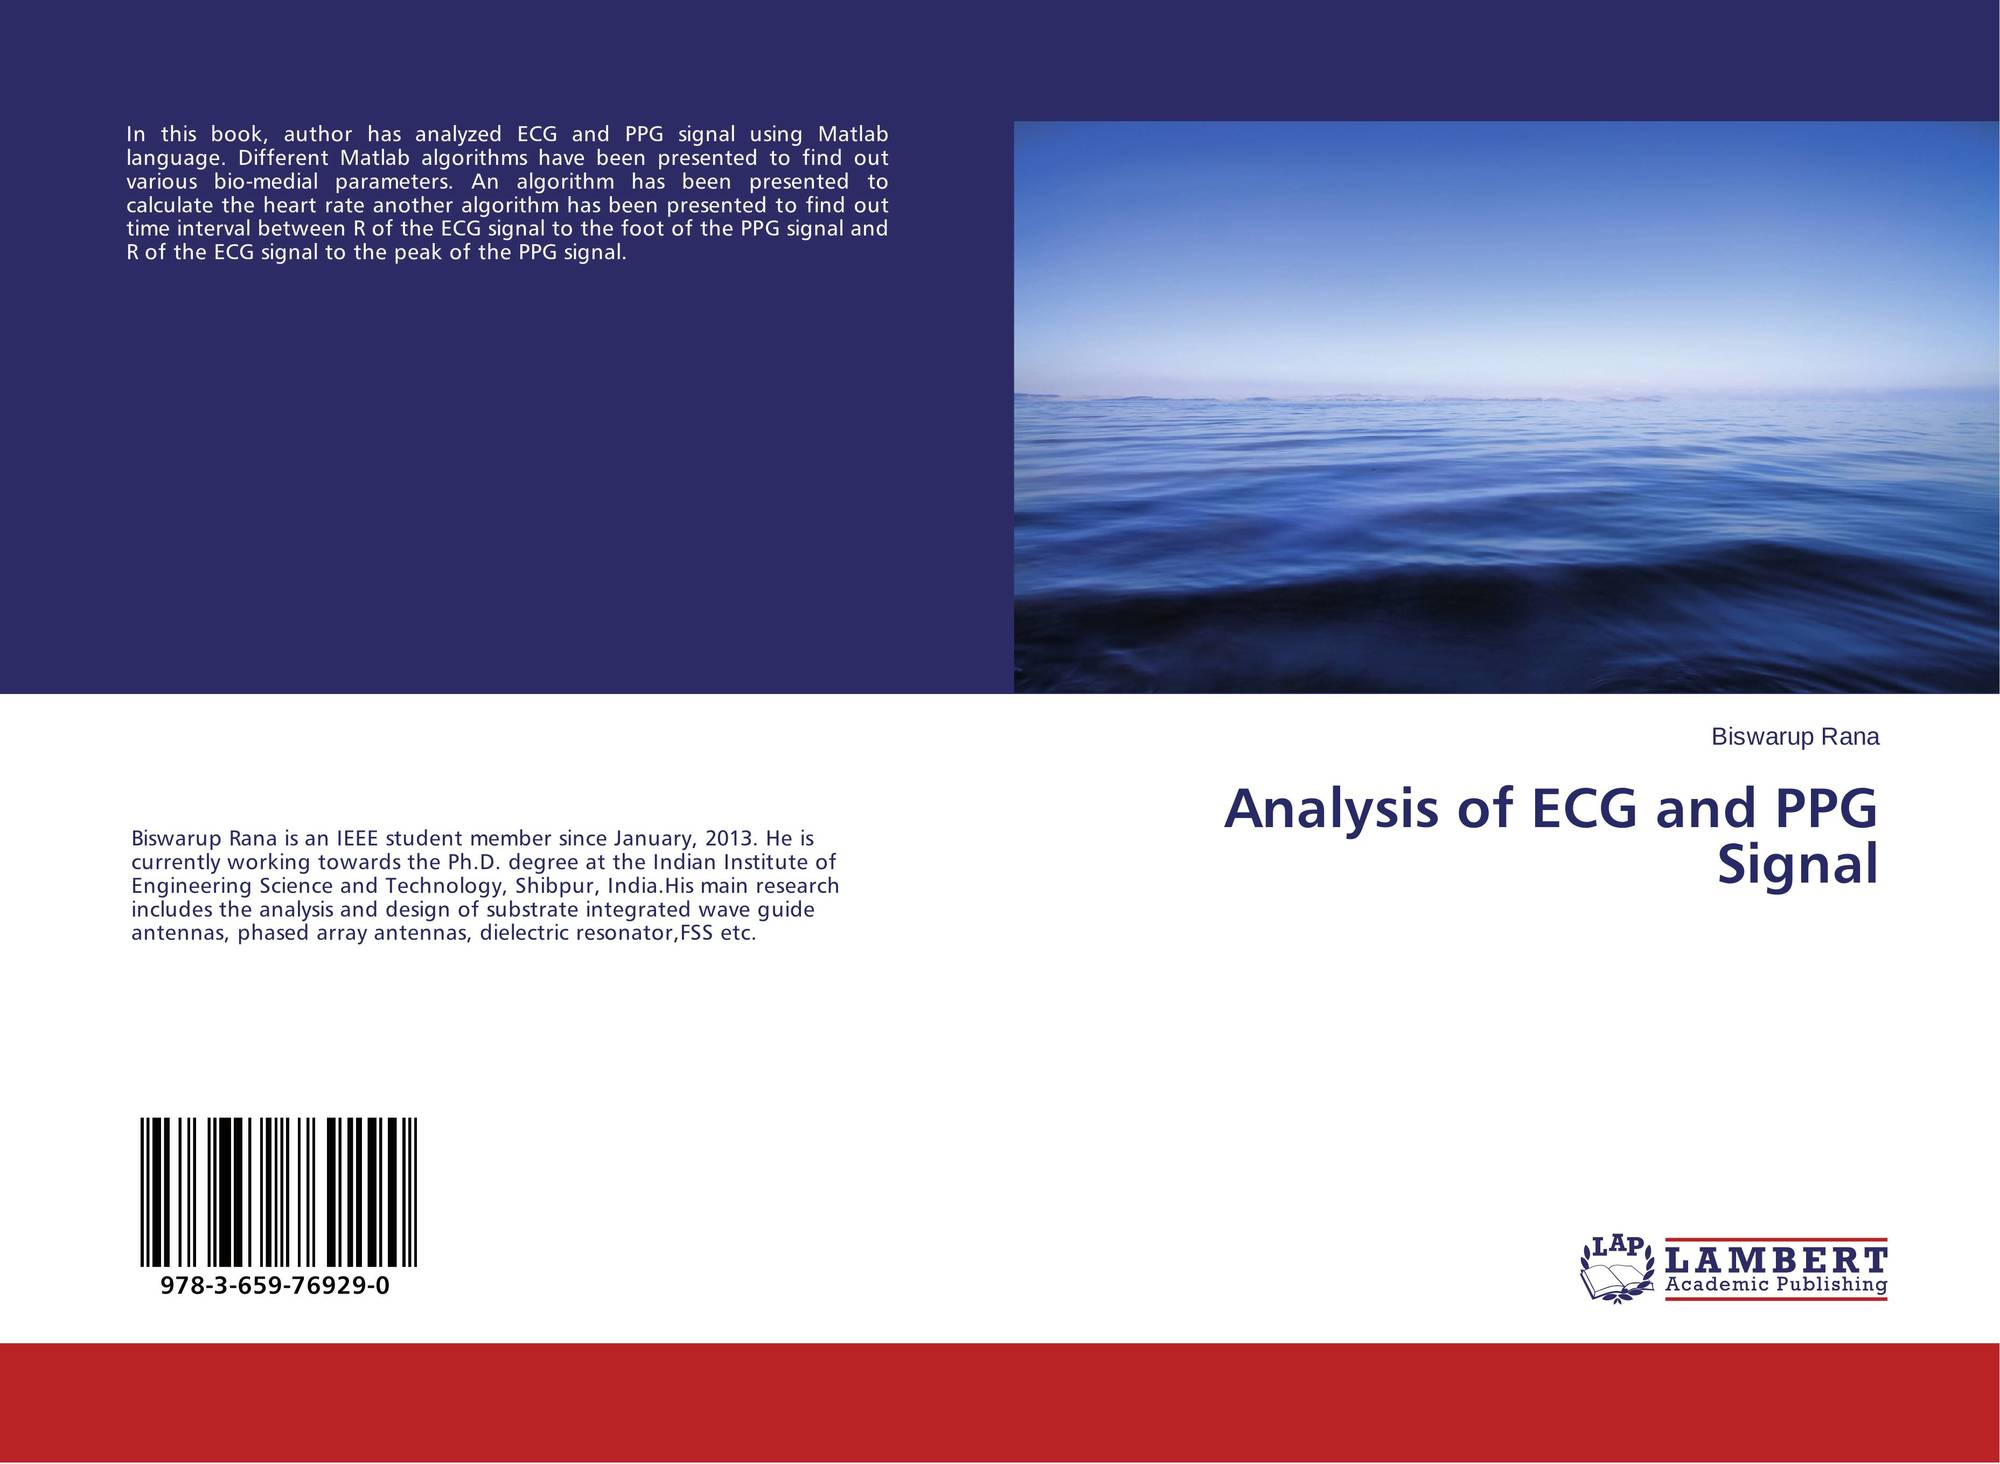 Analysis of ECG and PPG Signal, 978-3-659-76929-0